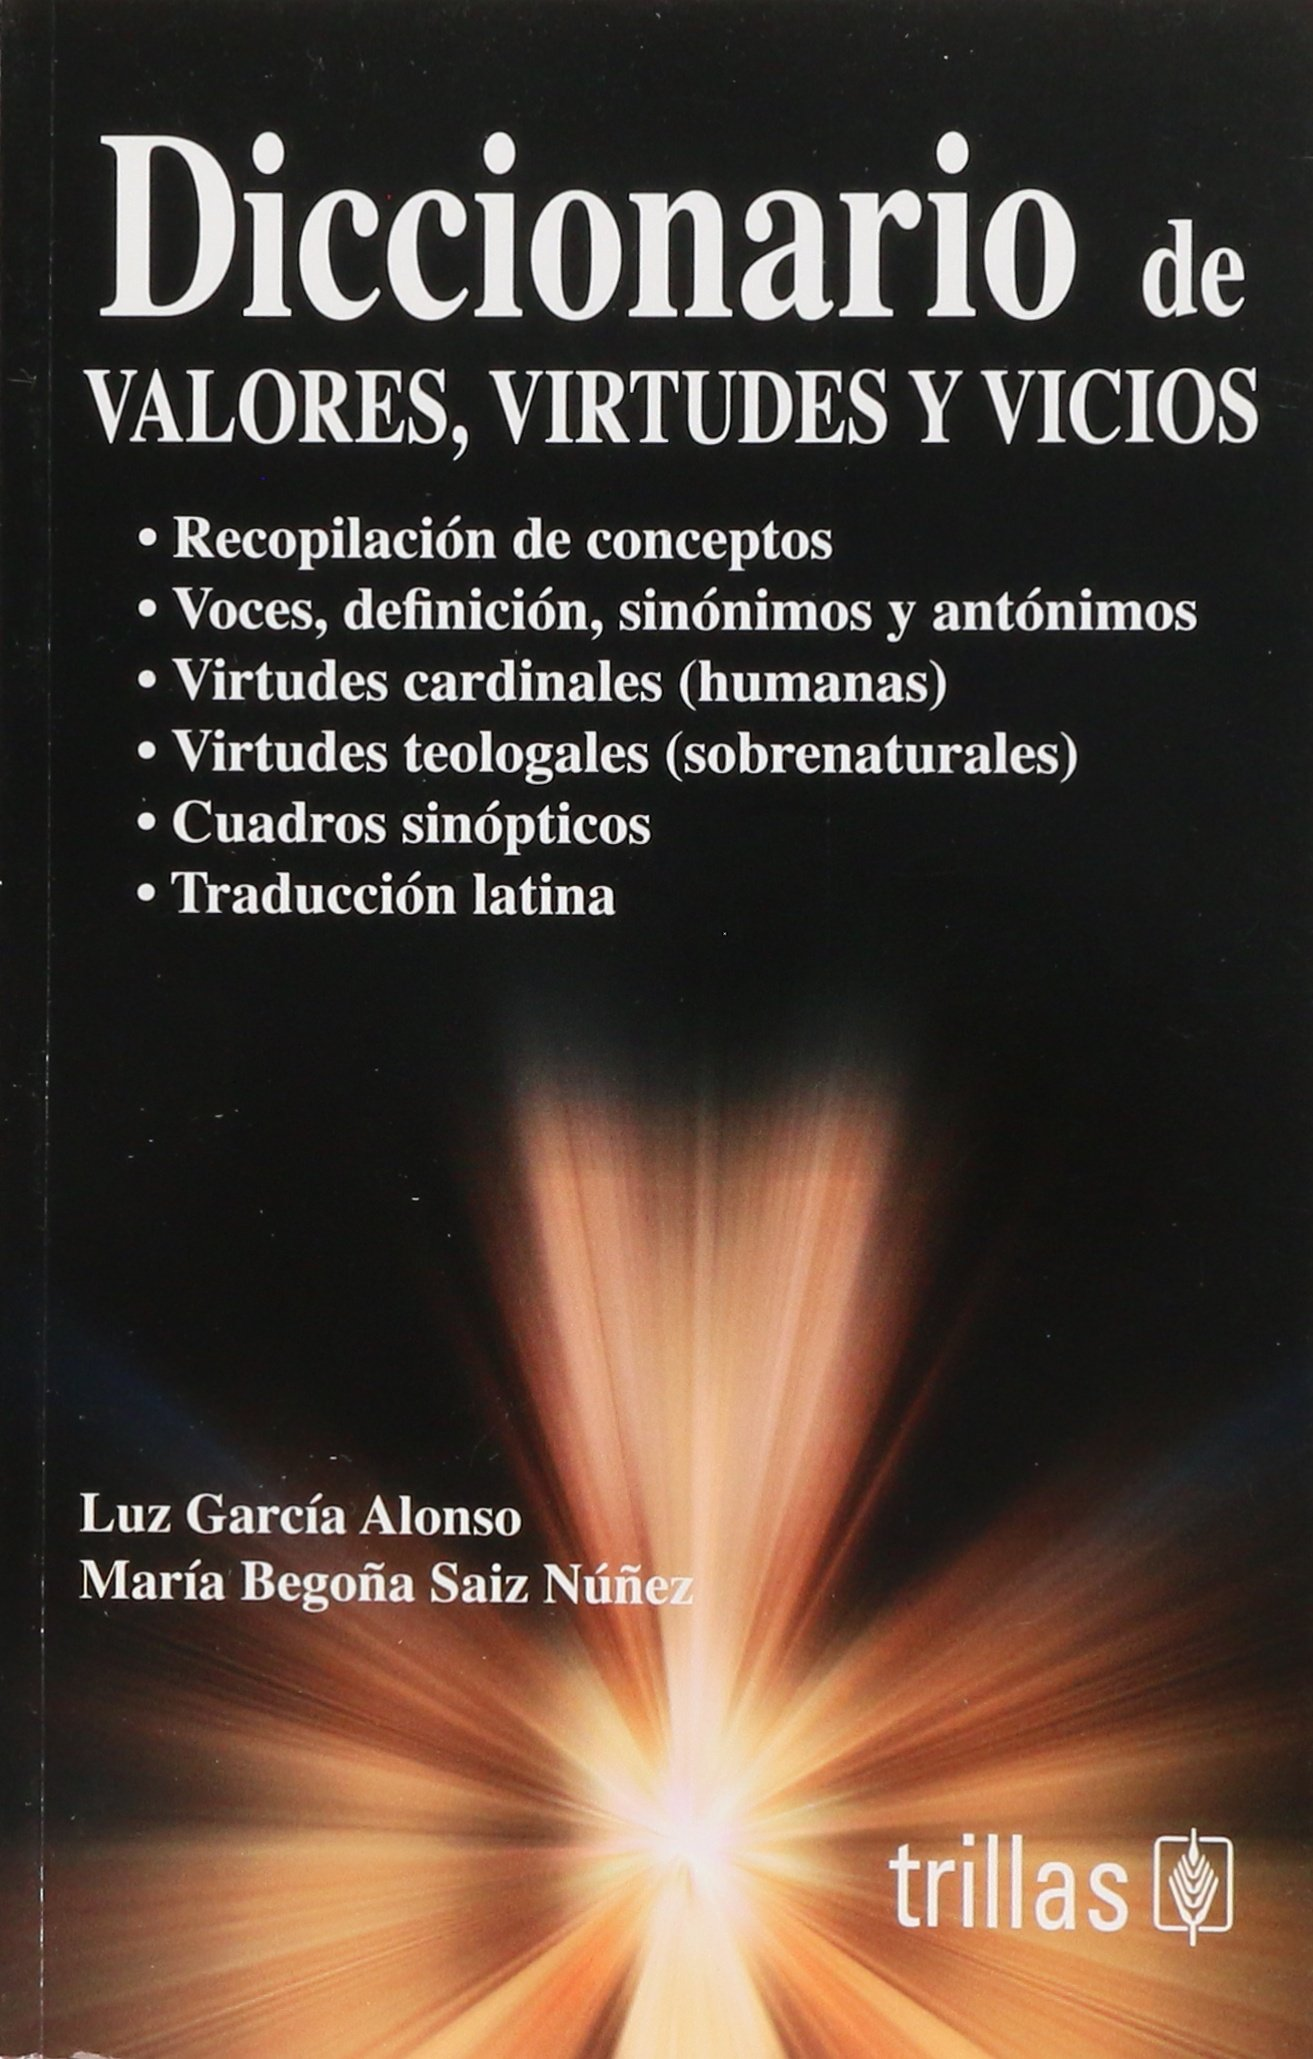 Diccionario de valores, virtudes y vicios/Dictionary of Values And Virtues And Bab Habits: Amazon.es: Luz Garcia Alonso, Maria Begona Saiz Nunez: Libros